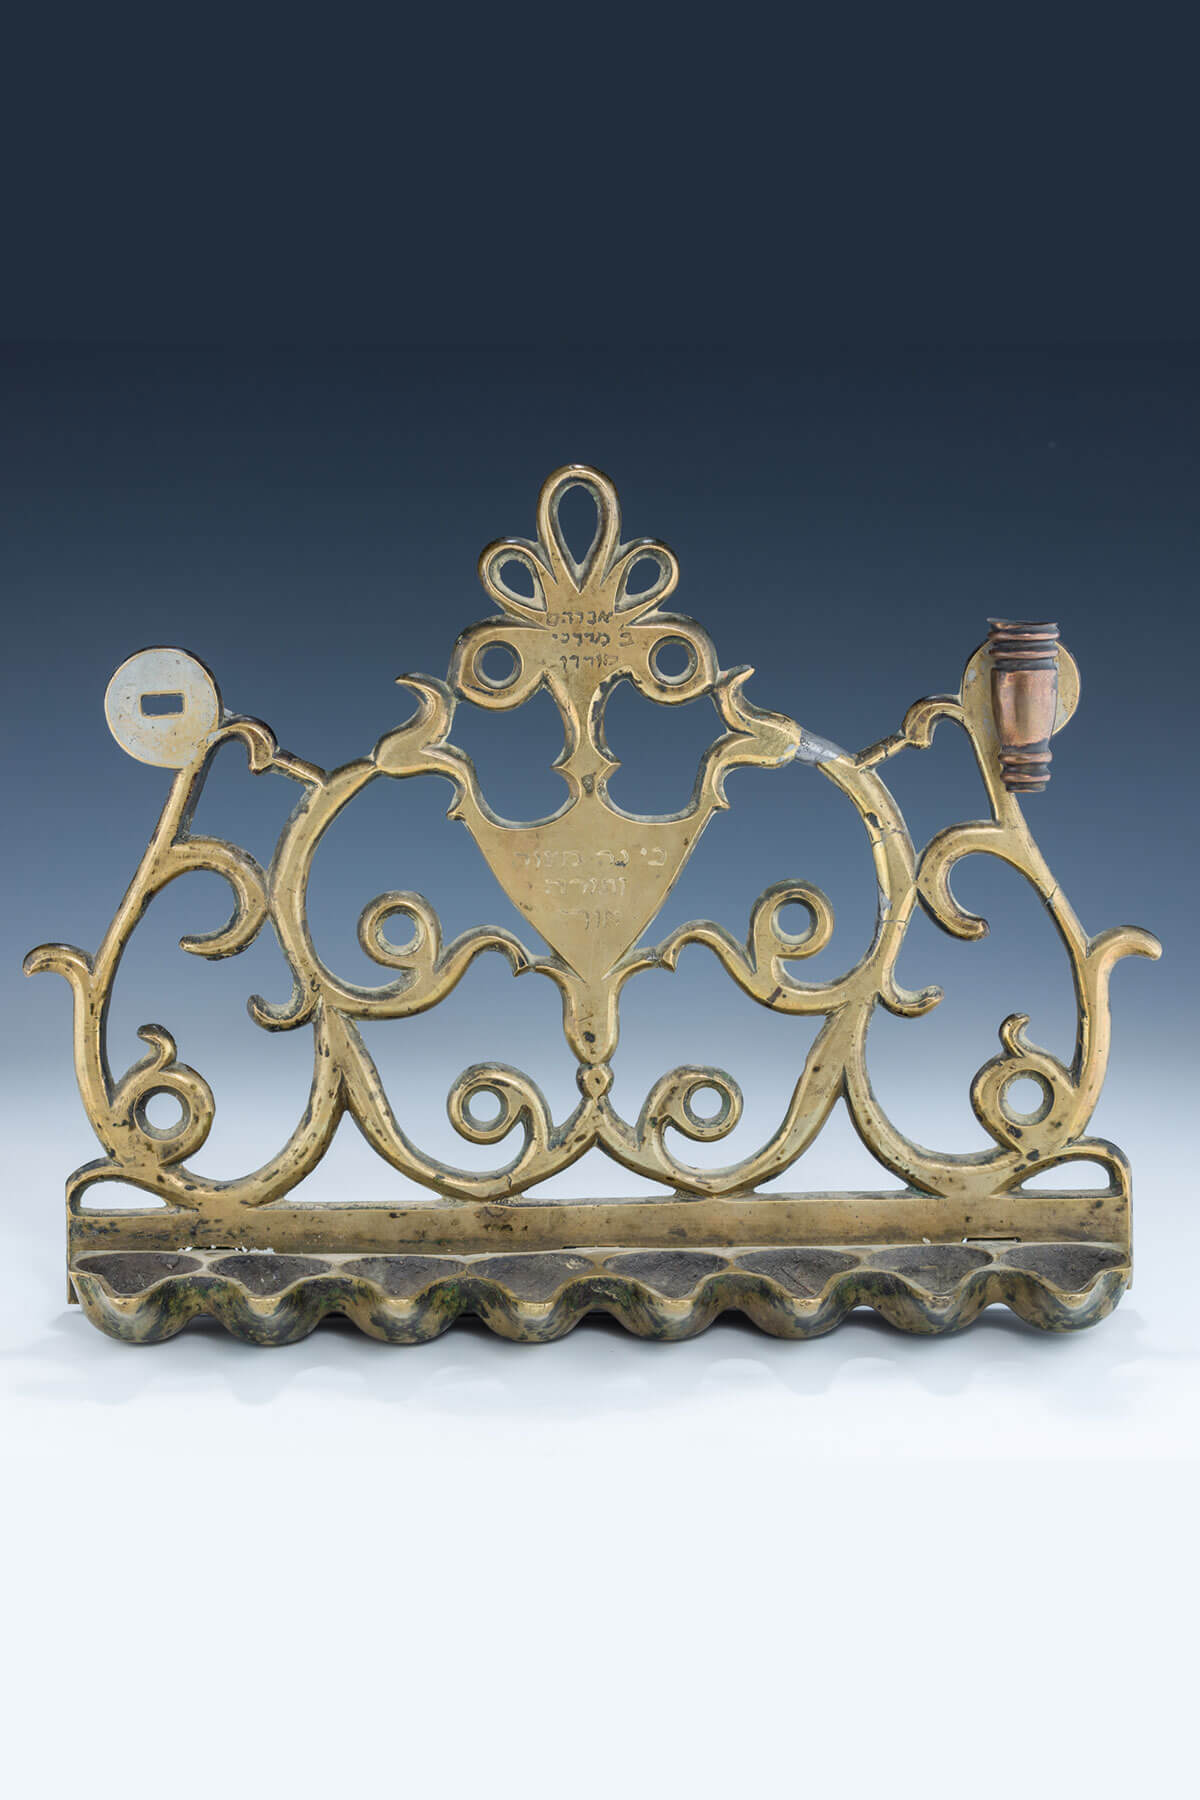 64. A Rare And Early Brass Chanukah Lamp